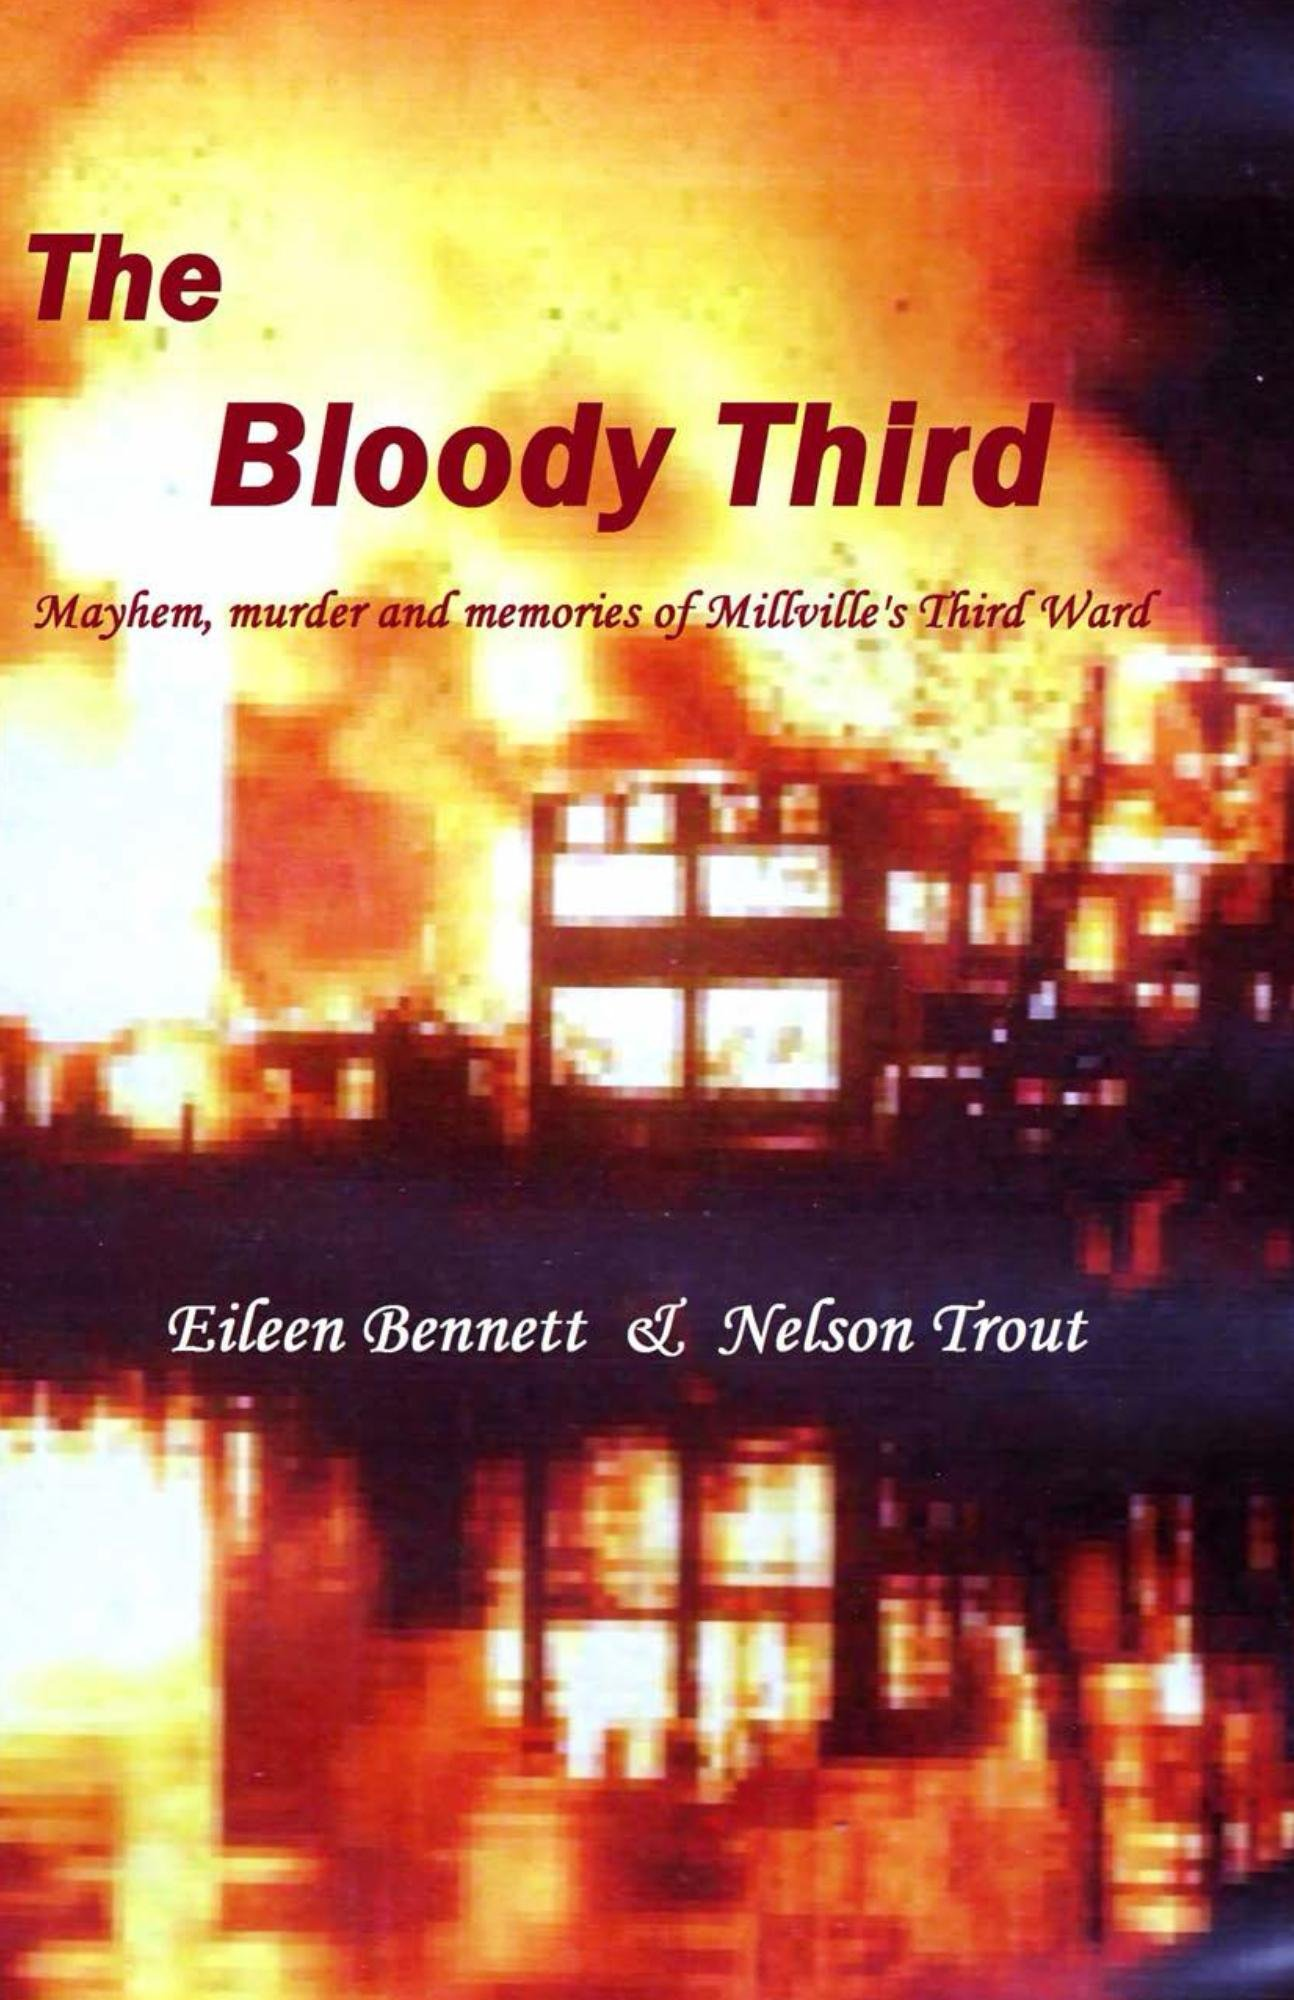 Download The Bloody Third: Mayhem, Murder And Memories Of Millville's Third Ward (English Edition) 